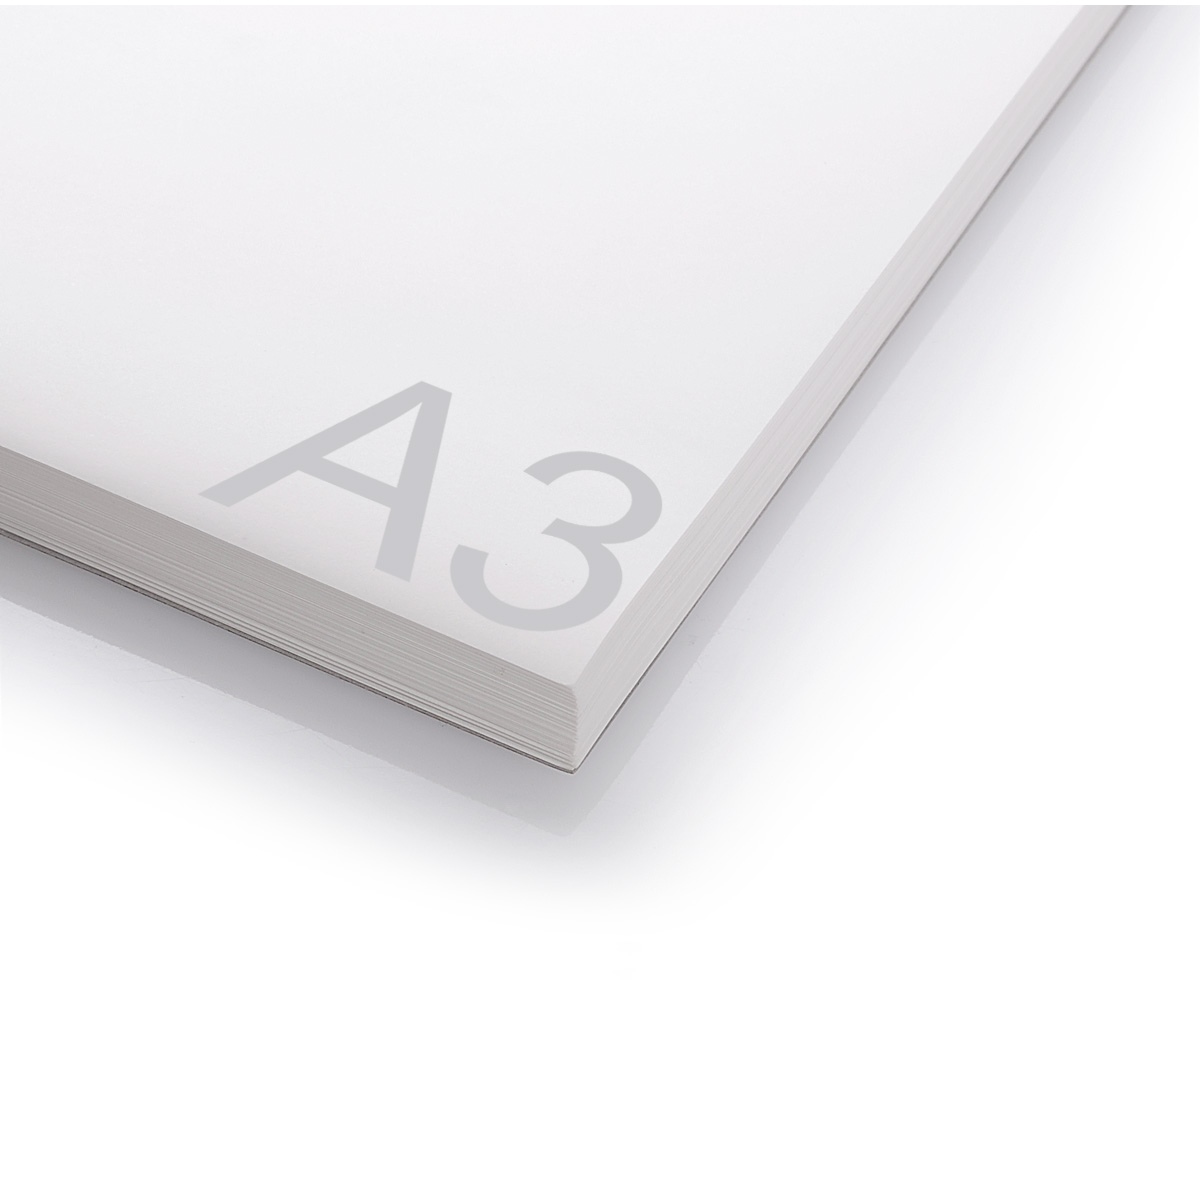 A3 Inkjet RC Photopaper | PREMIUM | Glossy | 260G | 20 sheets